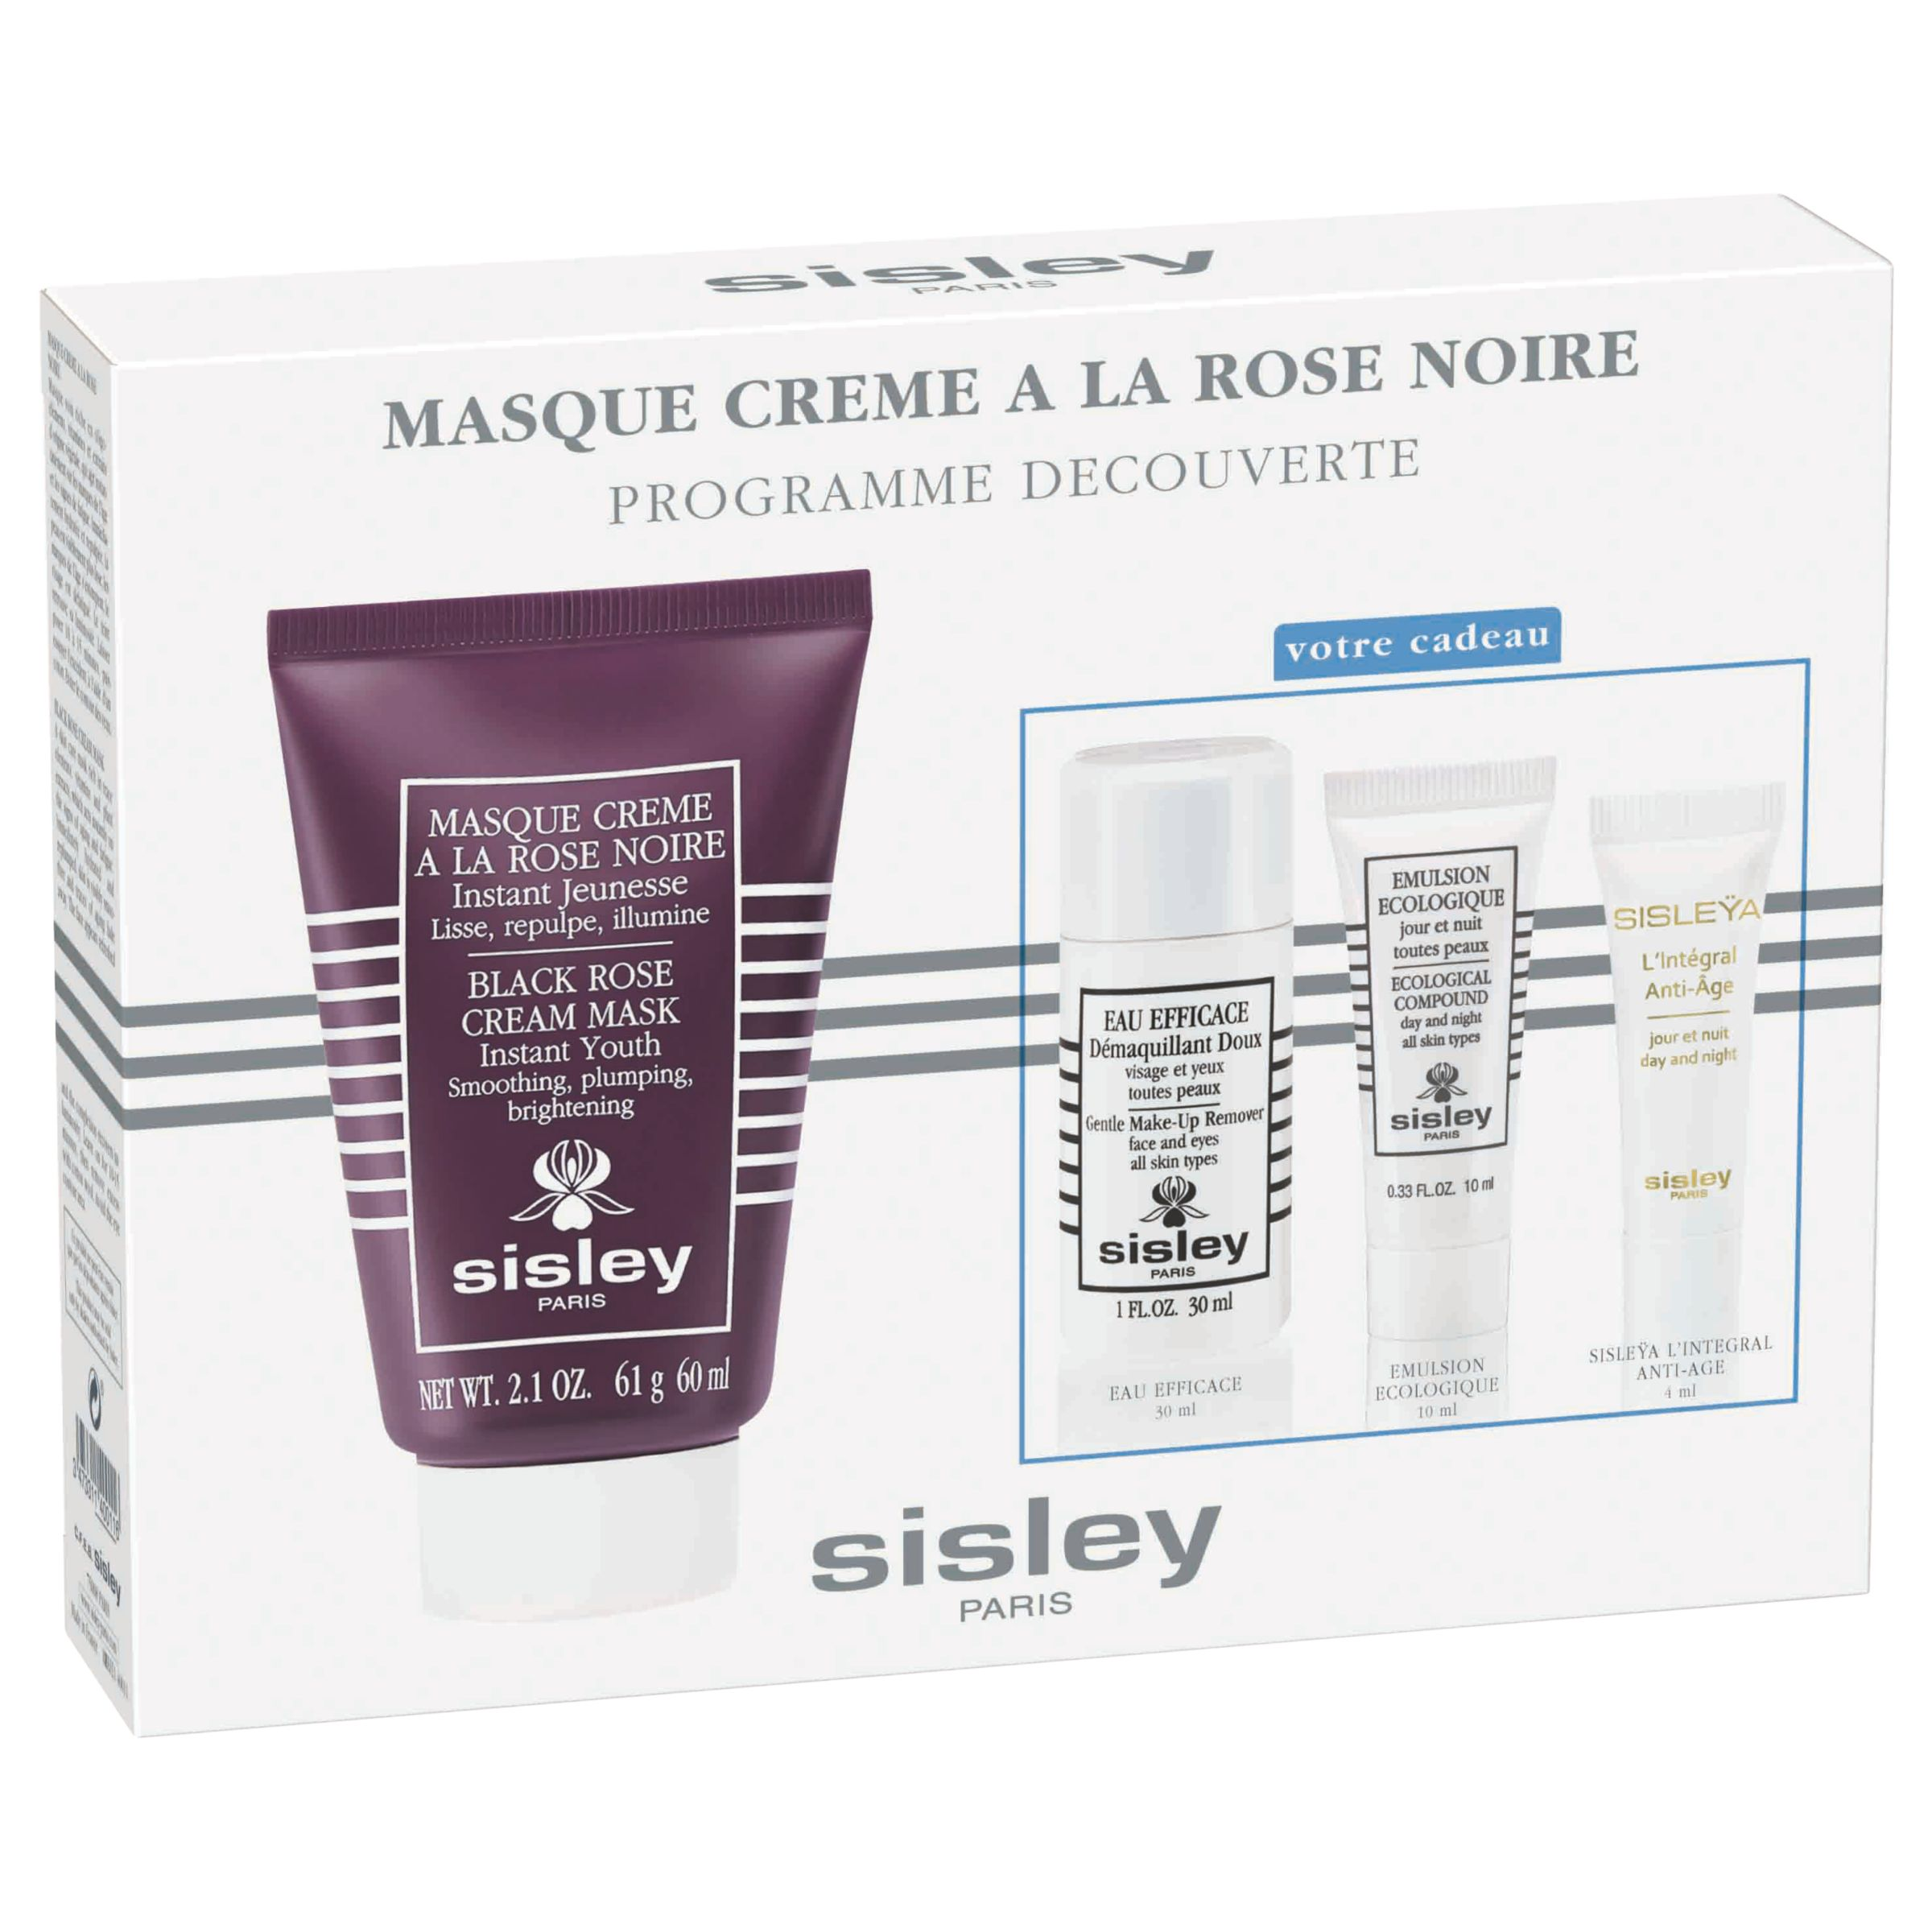 Sisley Sisley Black Rose Cream Mask Discovery Kit